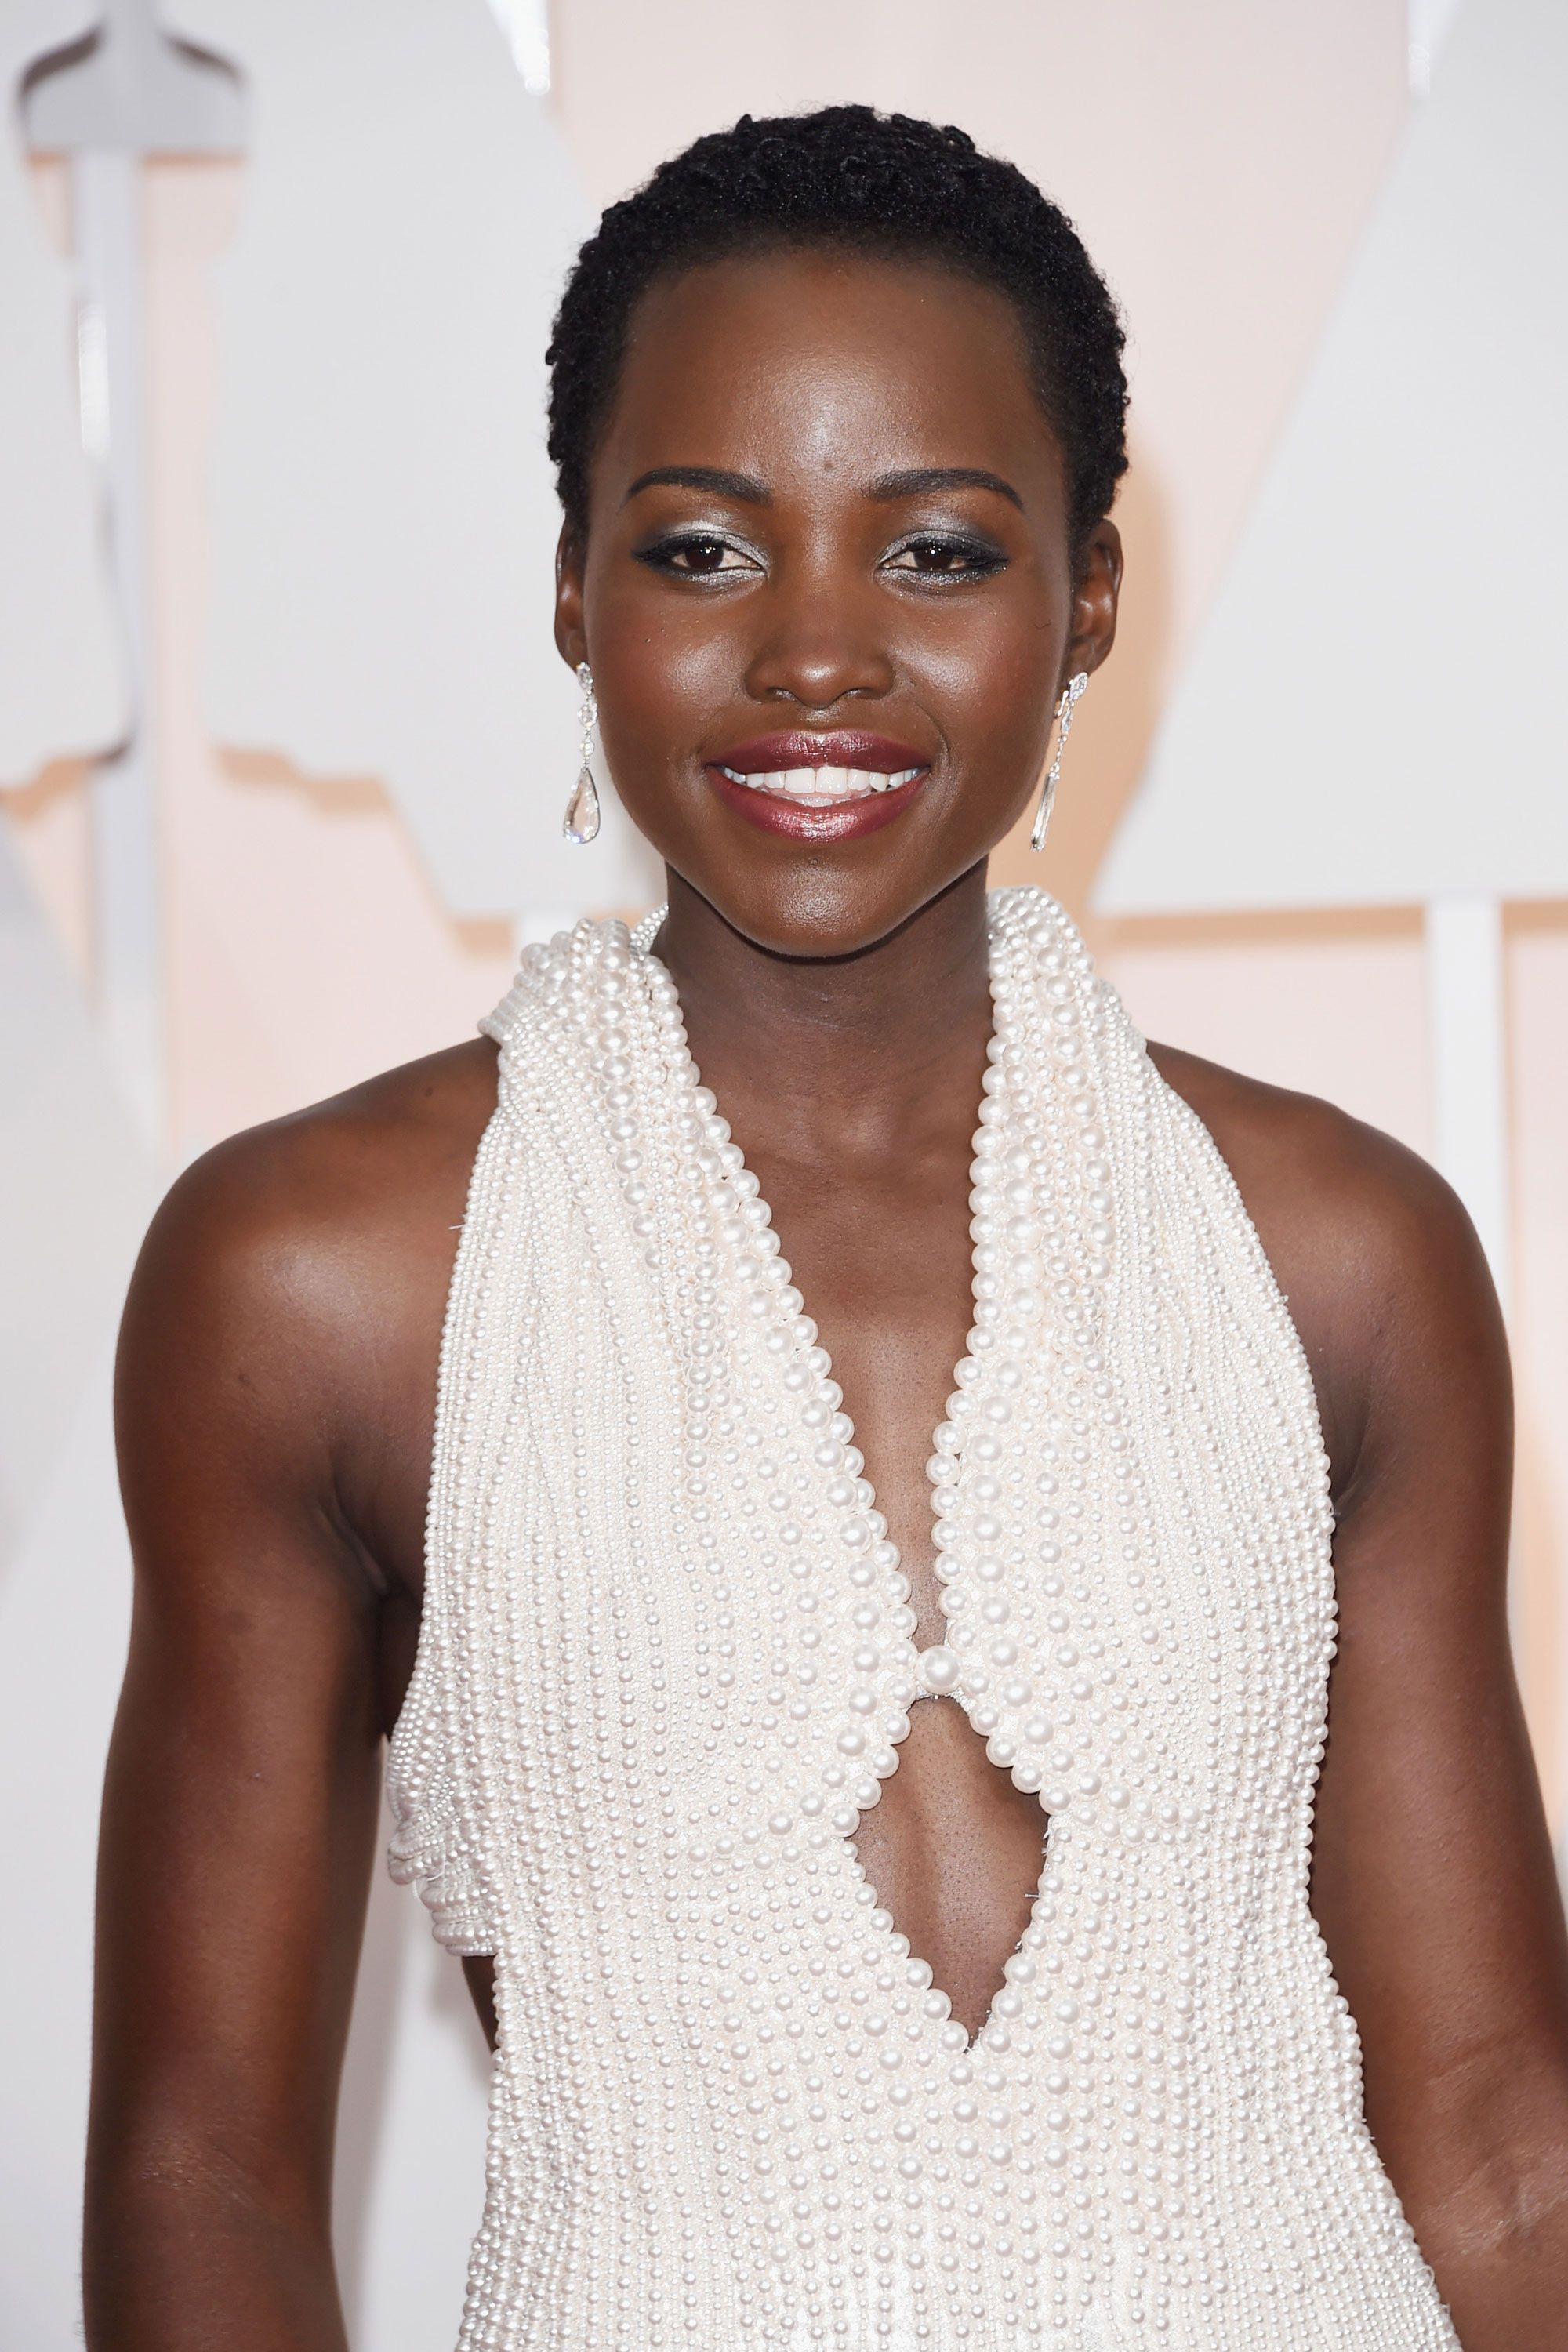 Lupita's skin couldn't look any more luminous, (though her custom pearl-covered Calvin Klein number ups her glow factor, surely).